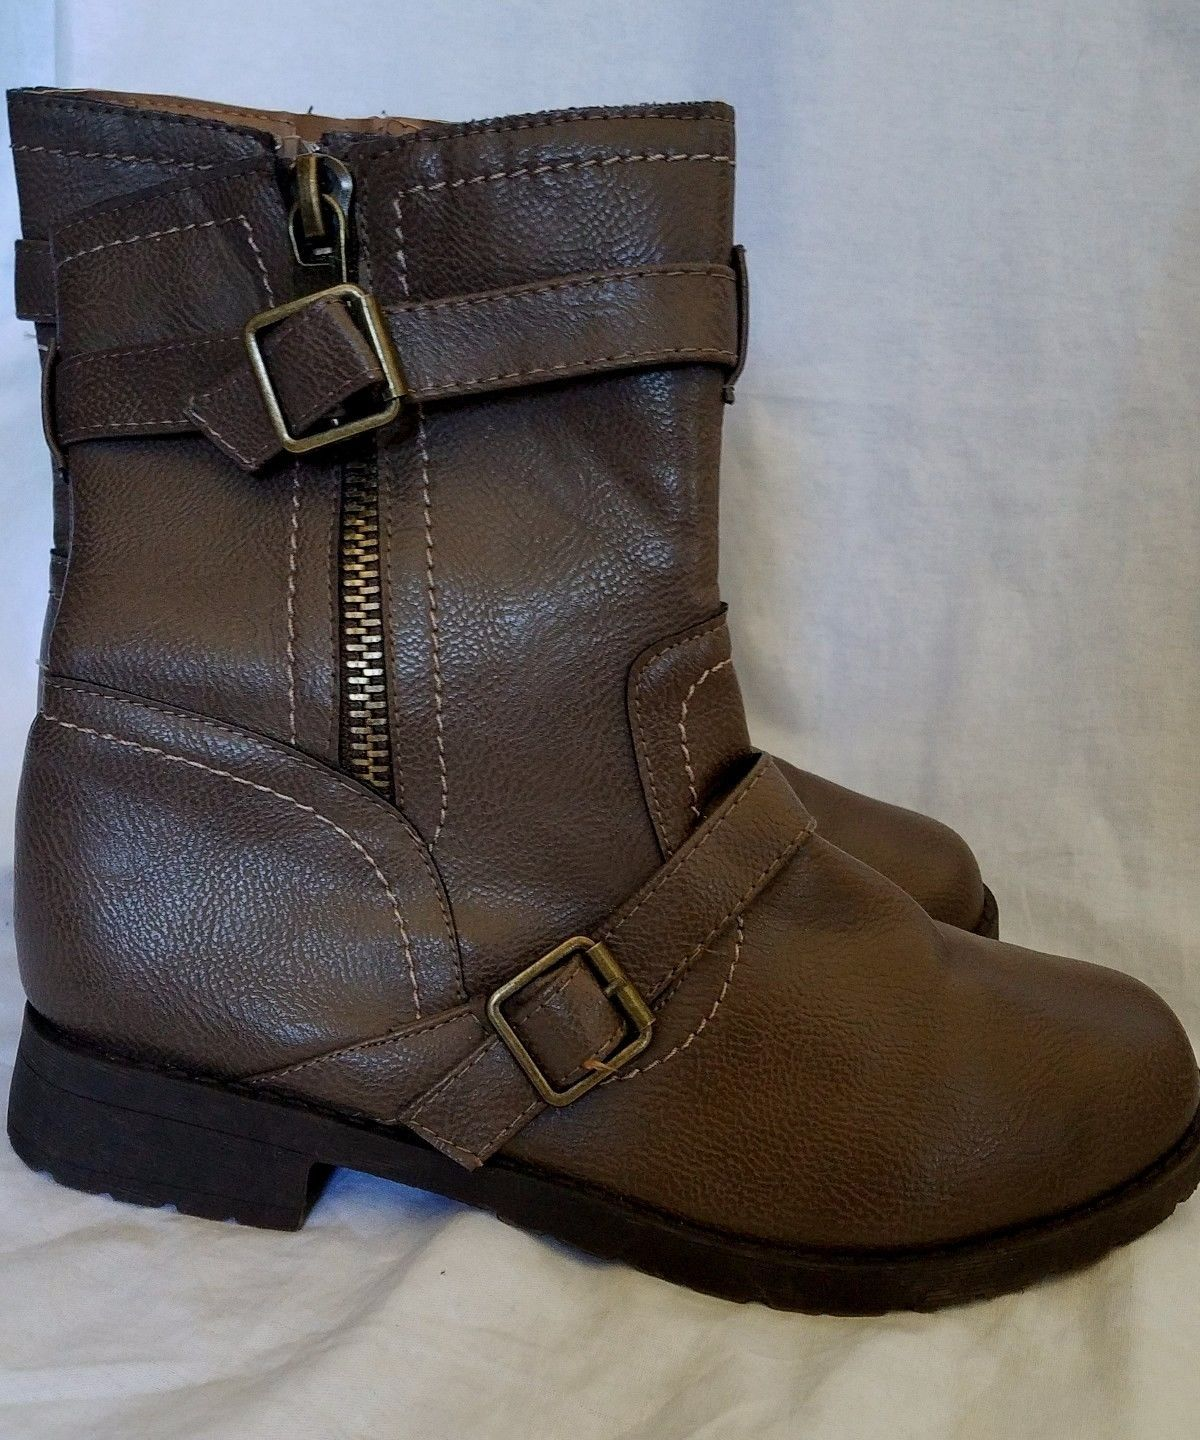 Brown Biker Boots Round Toe Buckles Zips Up Side Bamboo Size 7.5